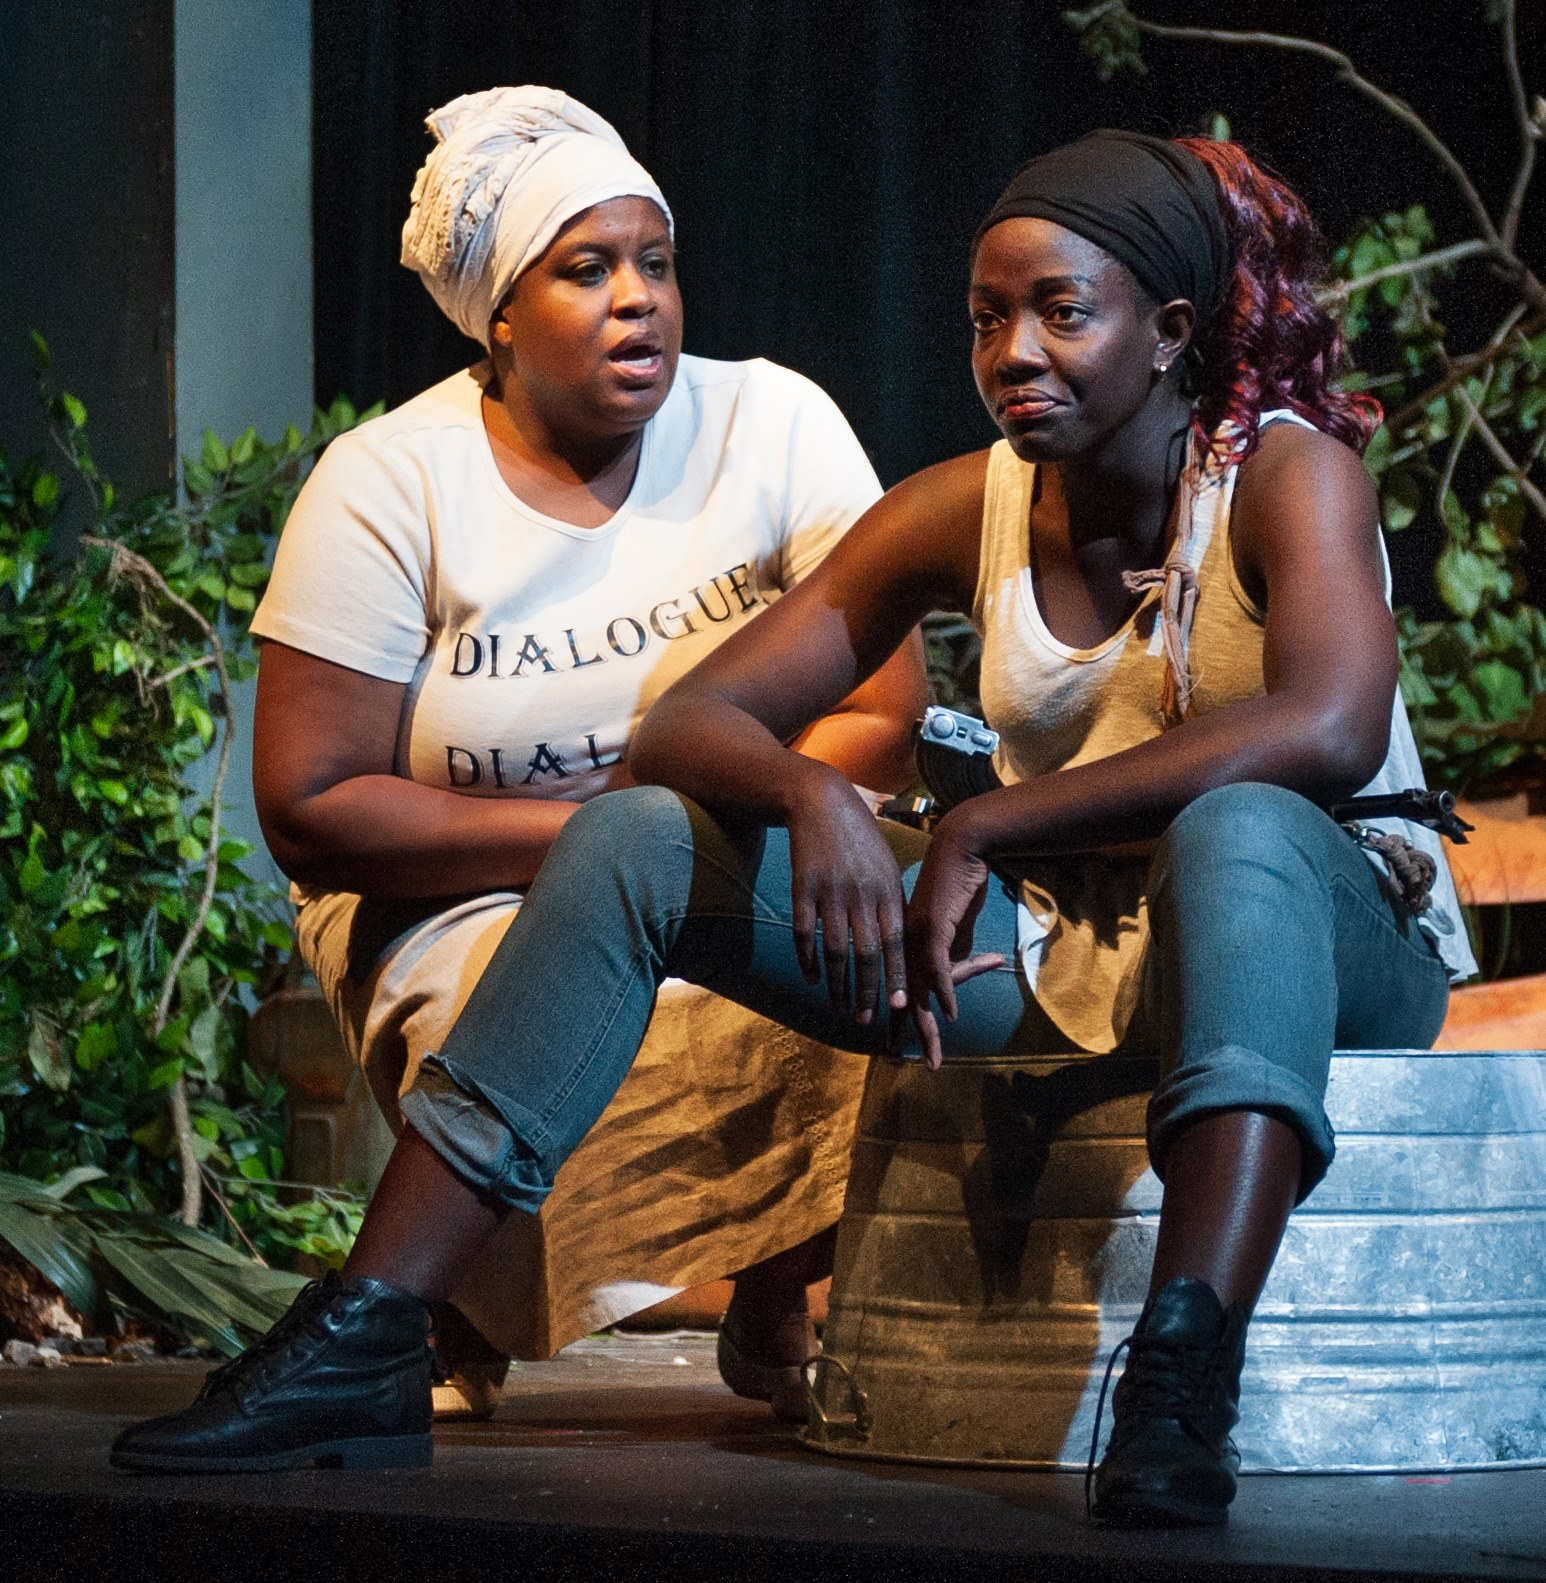 State of the Arts: The 2018-19 Cultural Arts Season Preview